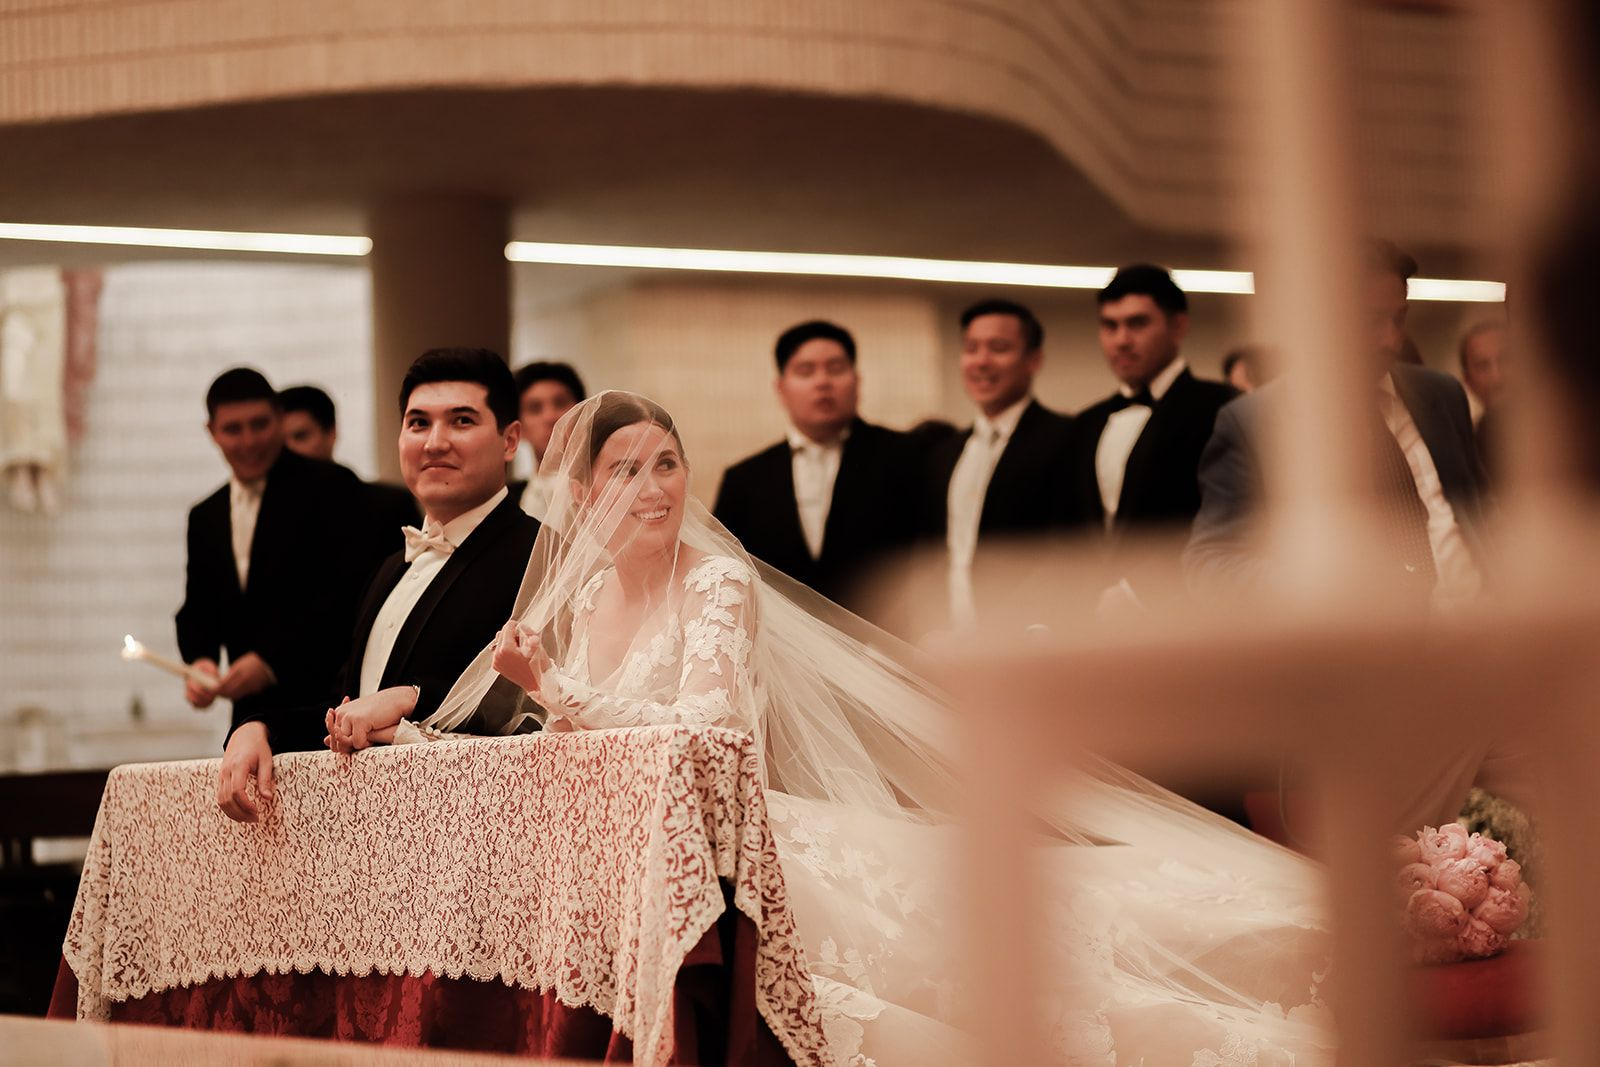 The Ties That Bind: Chris Imperial and Isa Palabyab Wed In Spain